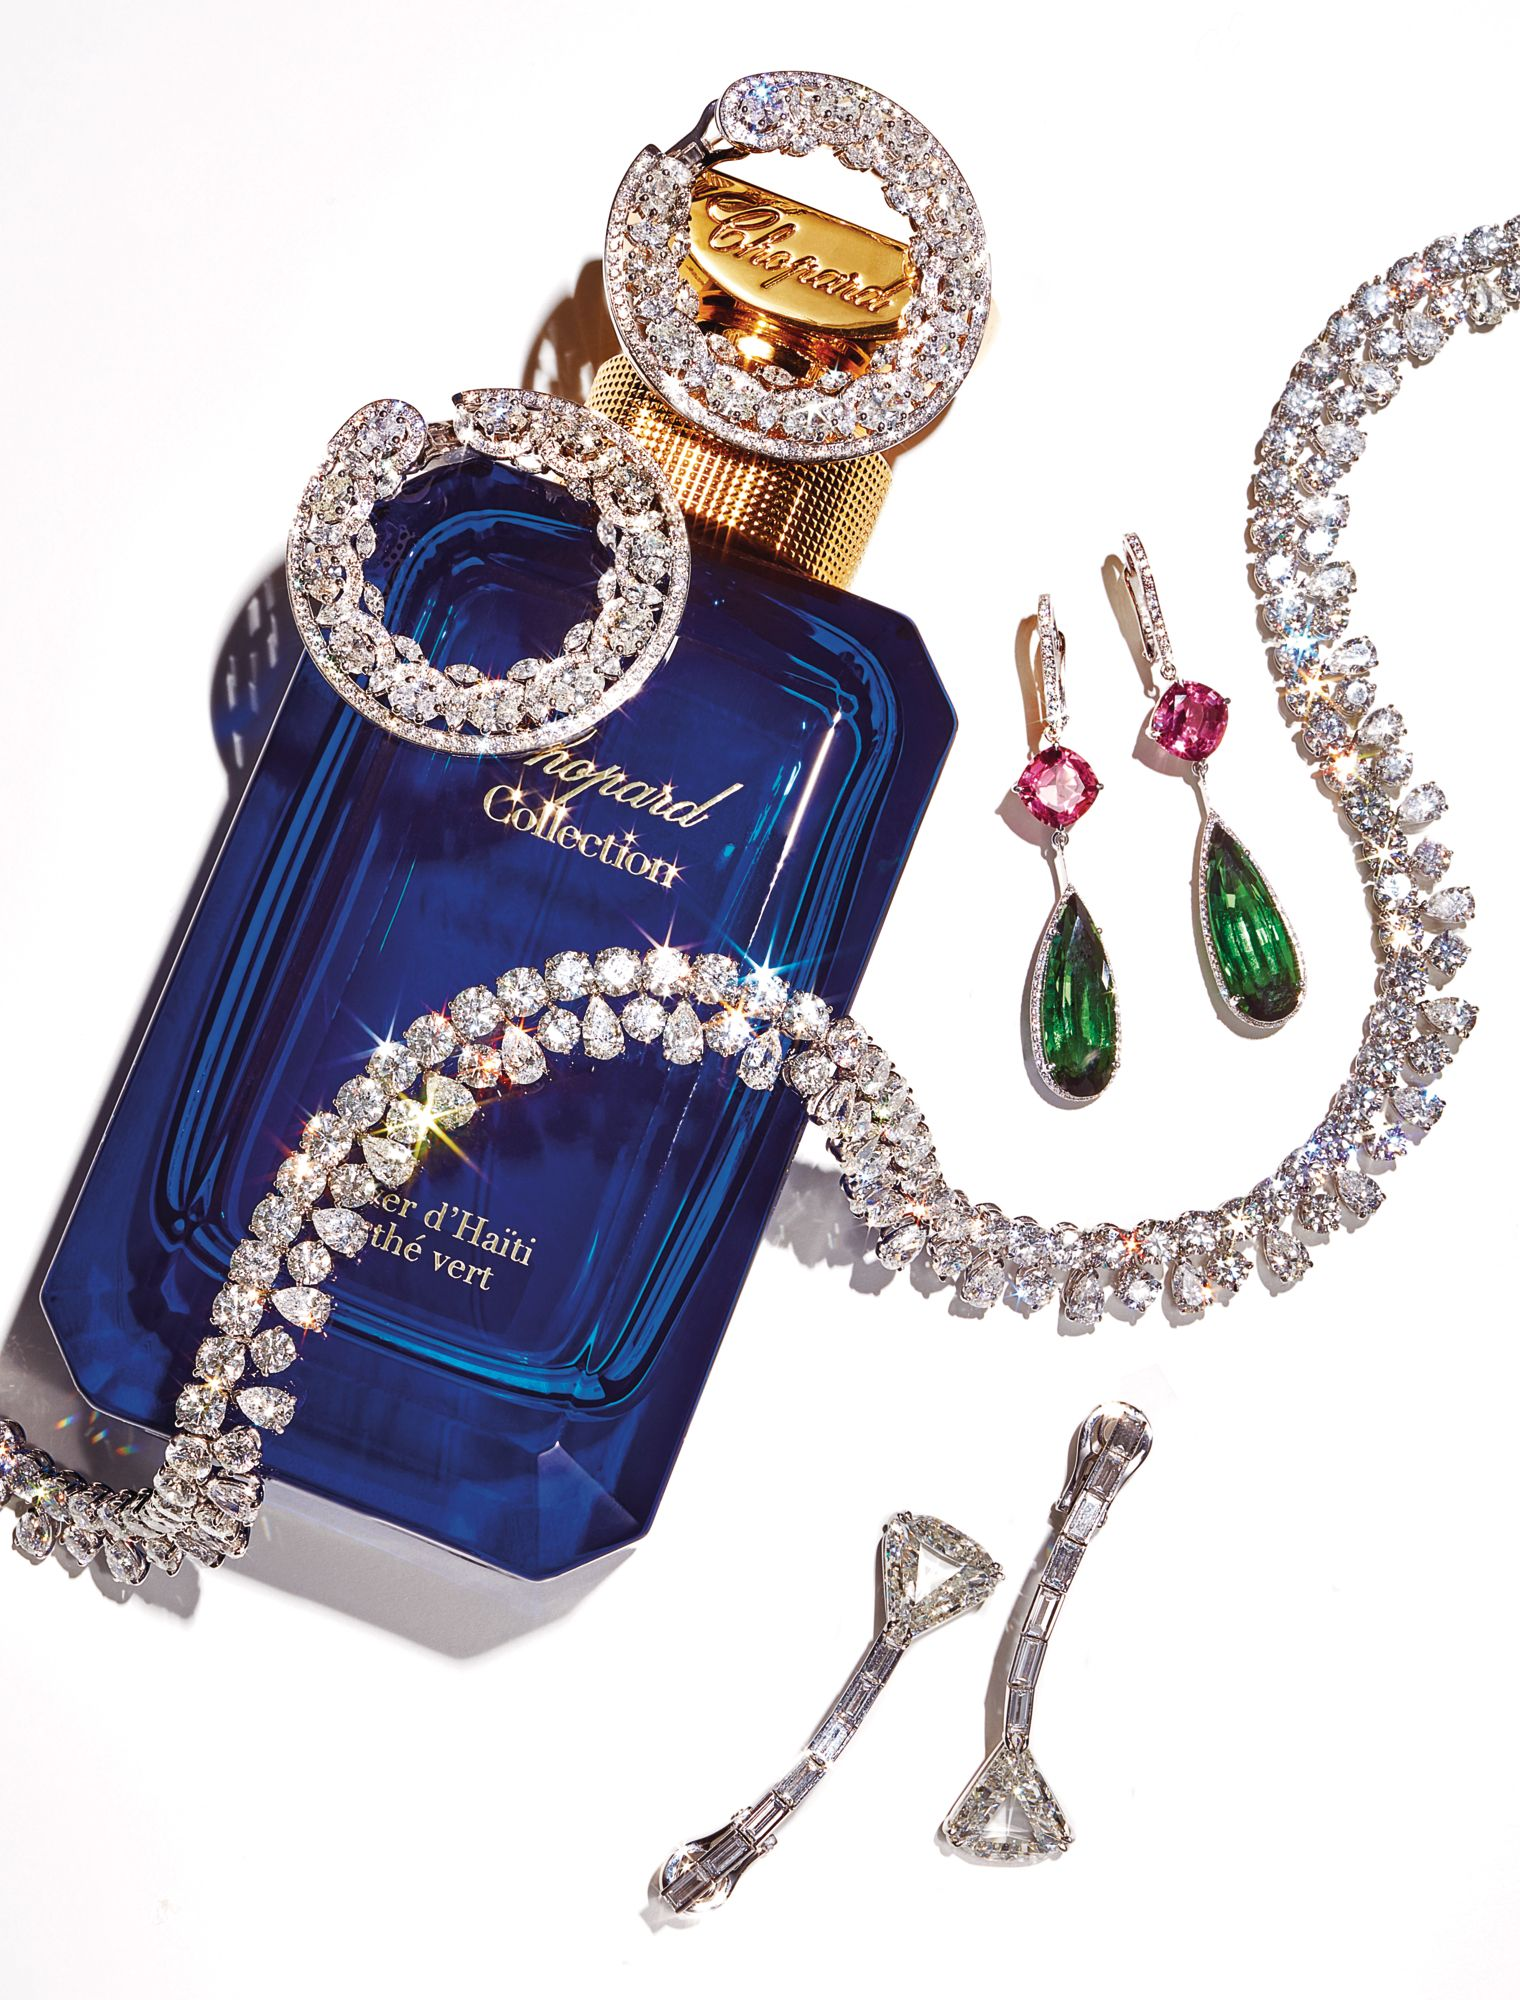 Precious Lace earrings in white gold and titanium set with diamonds; Temptations earrings in white gold set with green and pink tourmalines and diamonds; necklace in white gold set with diamonds; Solitaire earrings in white gold set with diamonds. Vétiver d'Haïti au Thé Vert perfume, all by Chopard